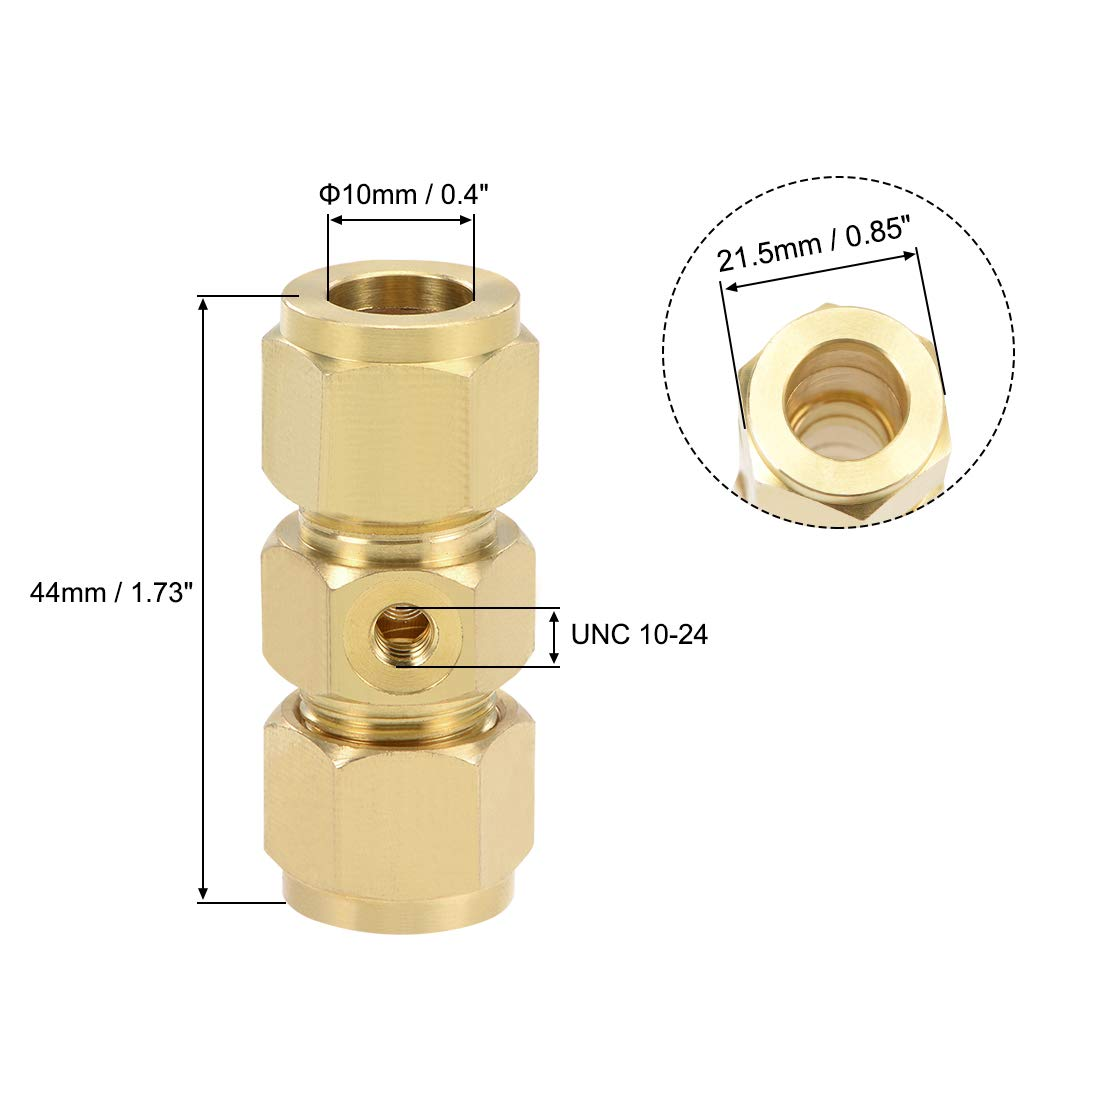 uxcell Brass Compression Tube Fitting 9.8mm OD Straight UNC 10-24 Thread Nozzle Hole Pipe Adapter for Water Garden Irrigation